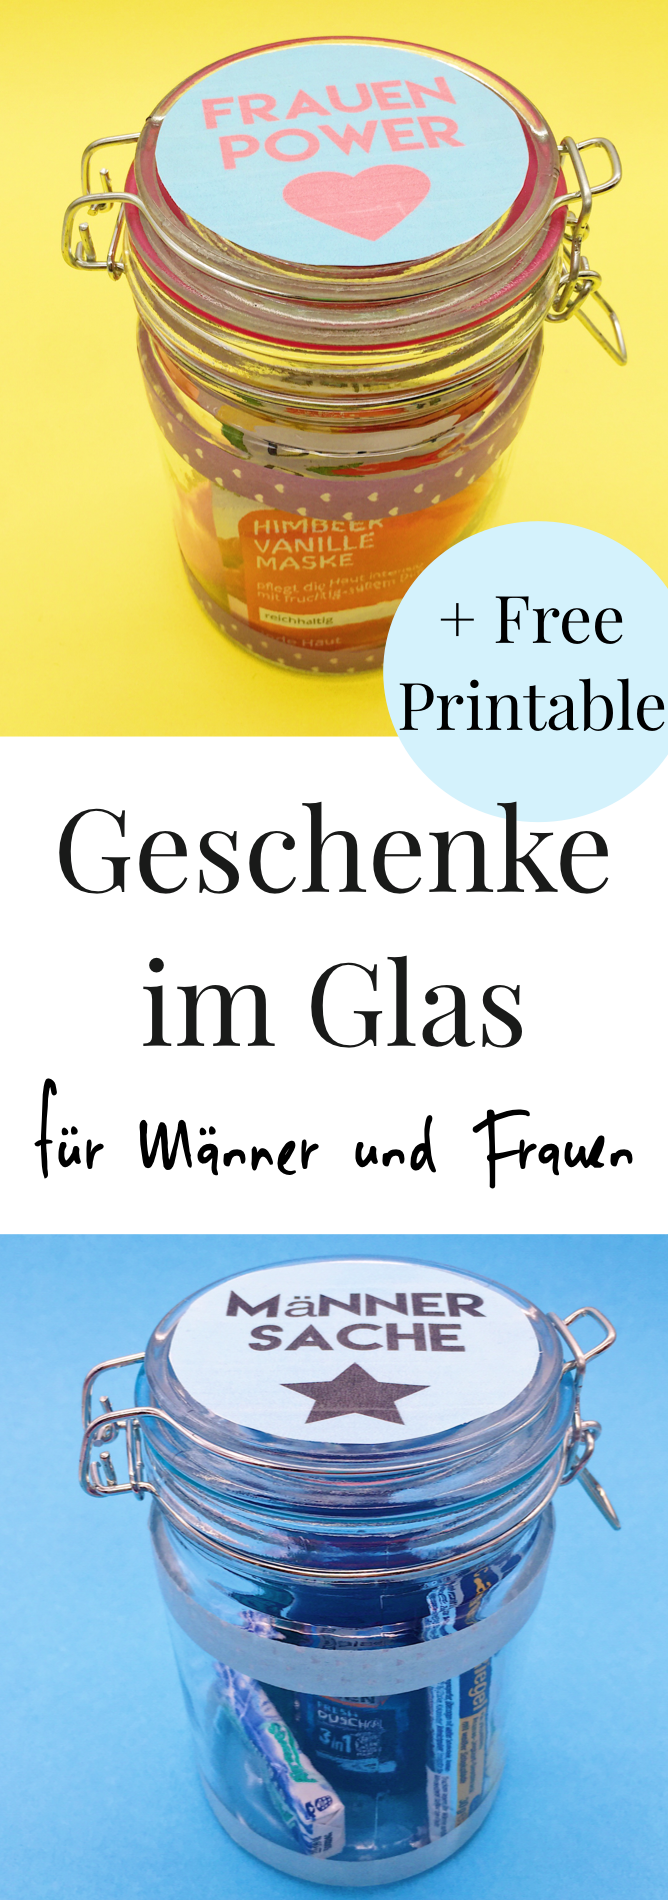 diy geschenke im glas selber machen happy dings diy tipps pinterest. Black Bedroom Furniture Sets. Home Design Ideas